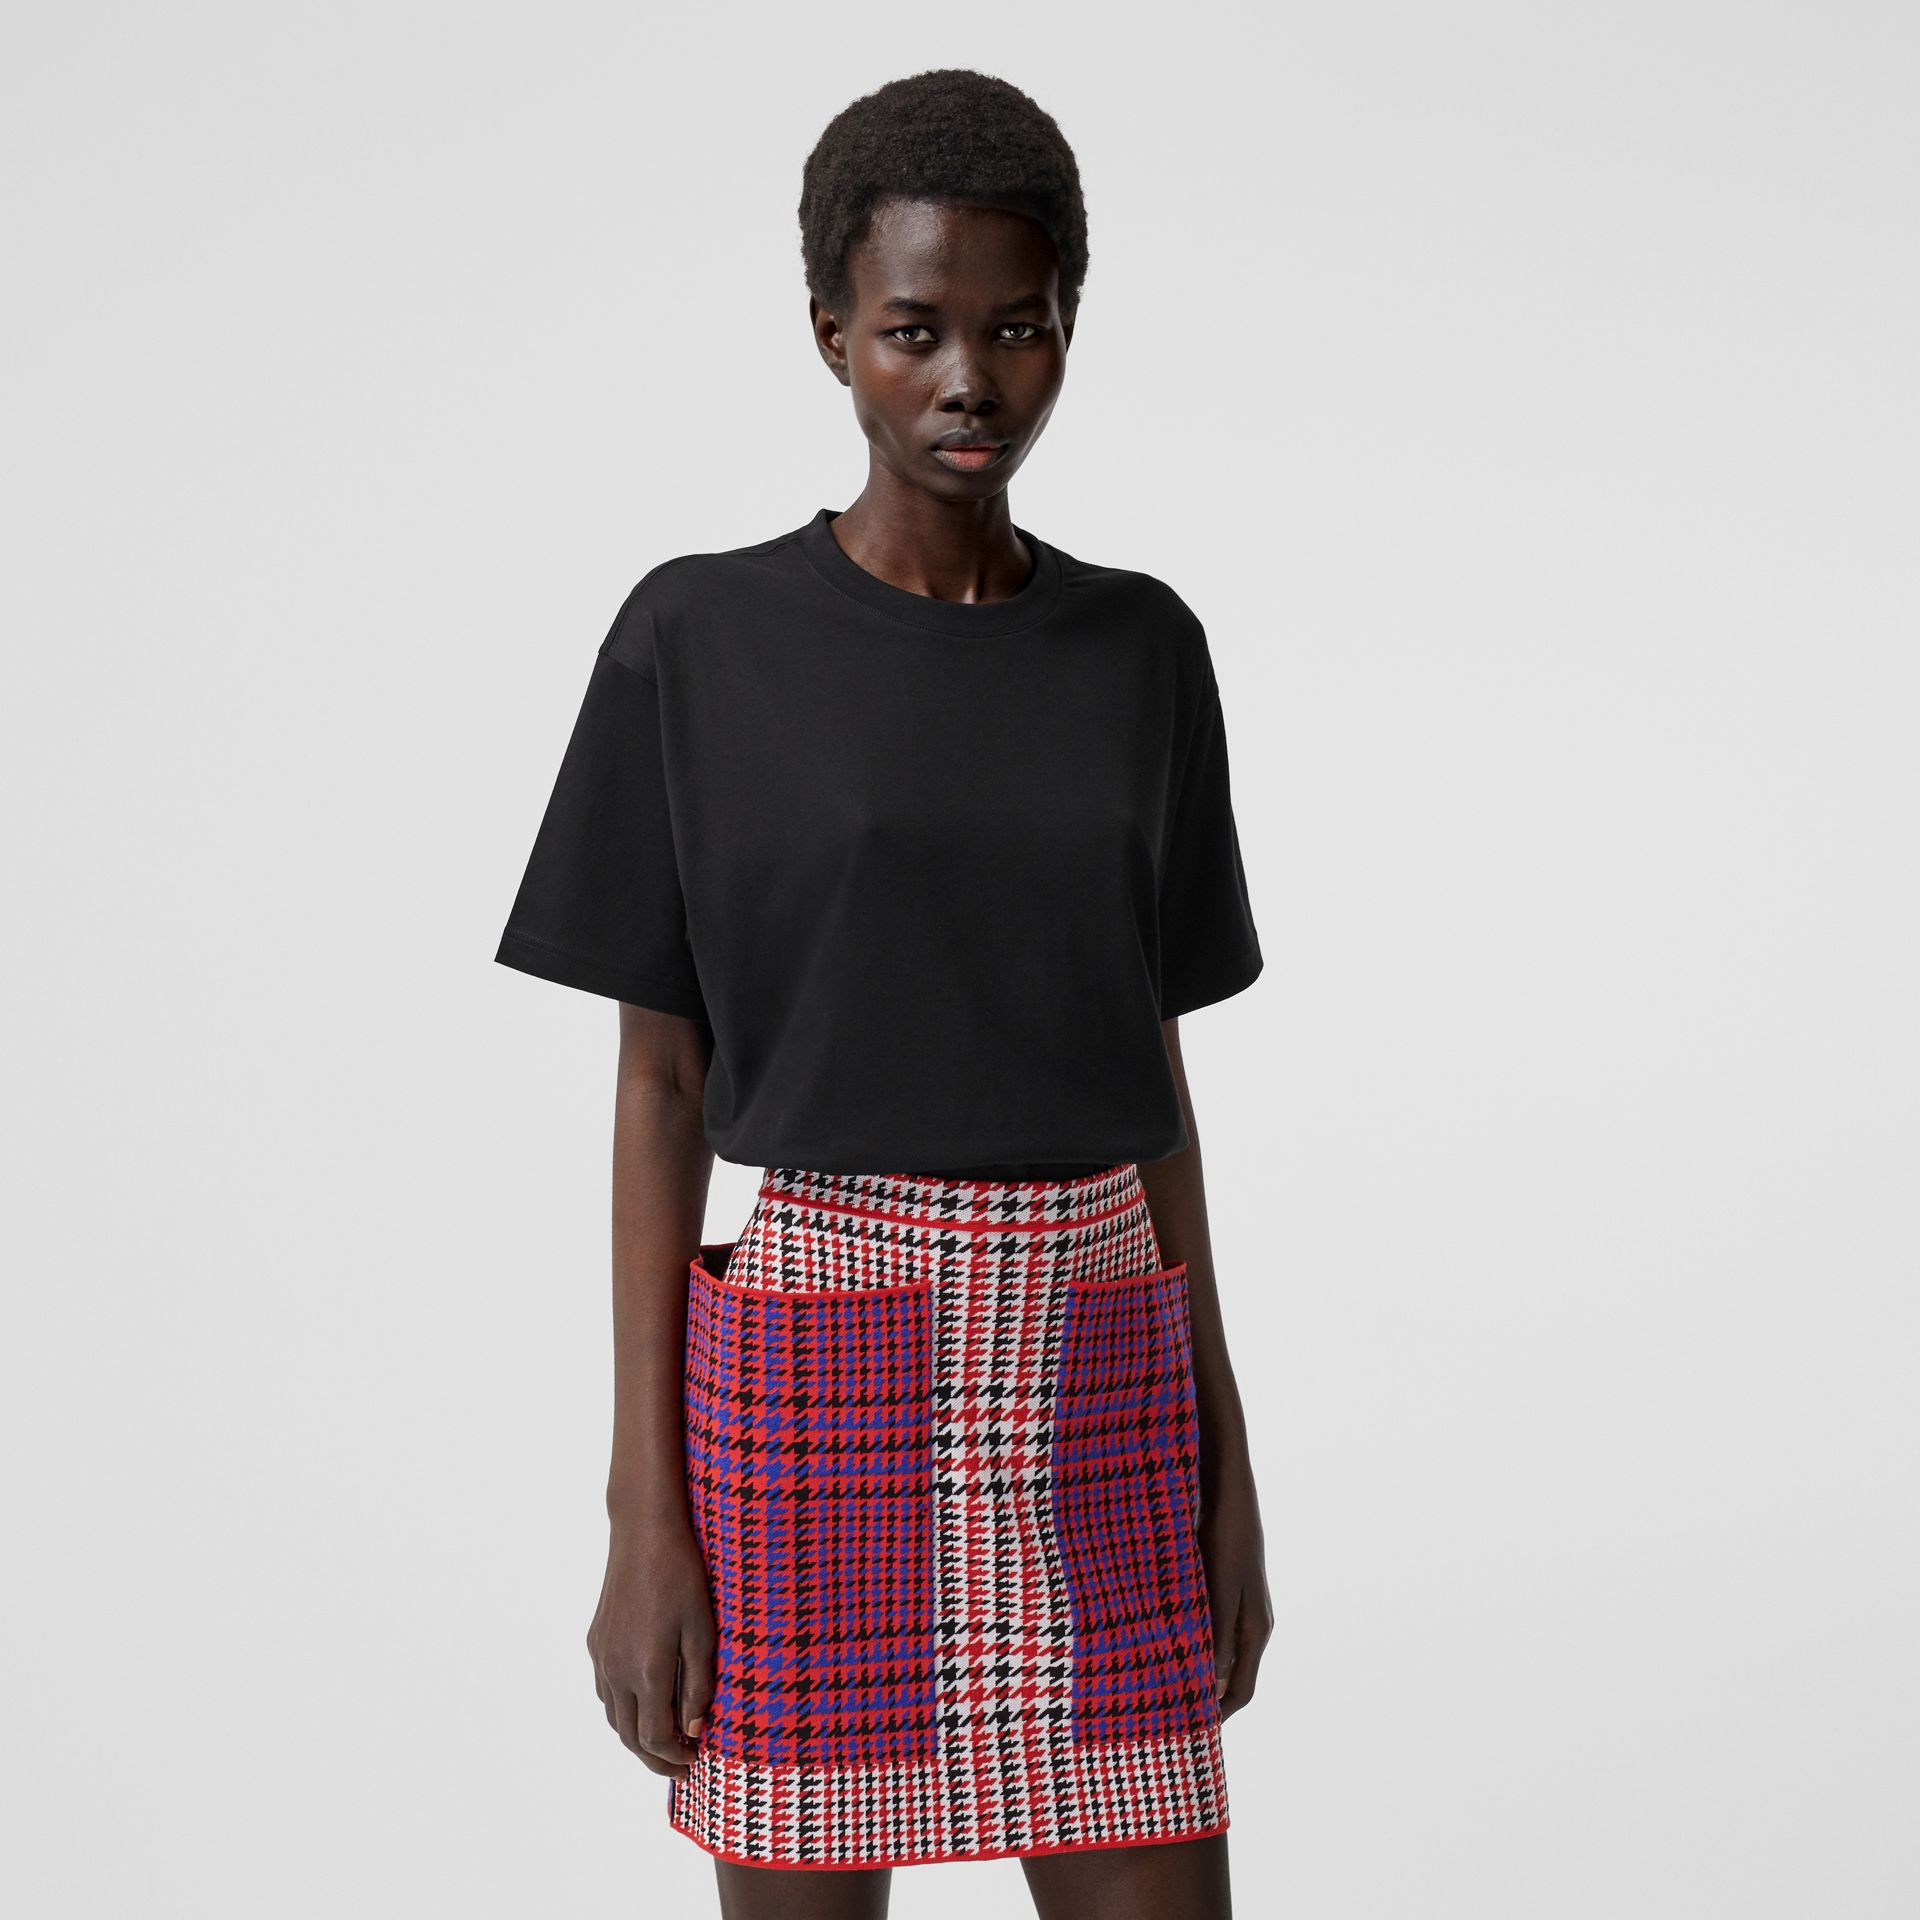 Coordinates Print Cotton Oversized T-shirt in Black - Women | Burberry Canada - gallery image 6